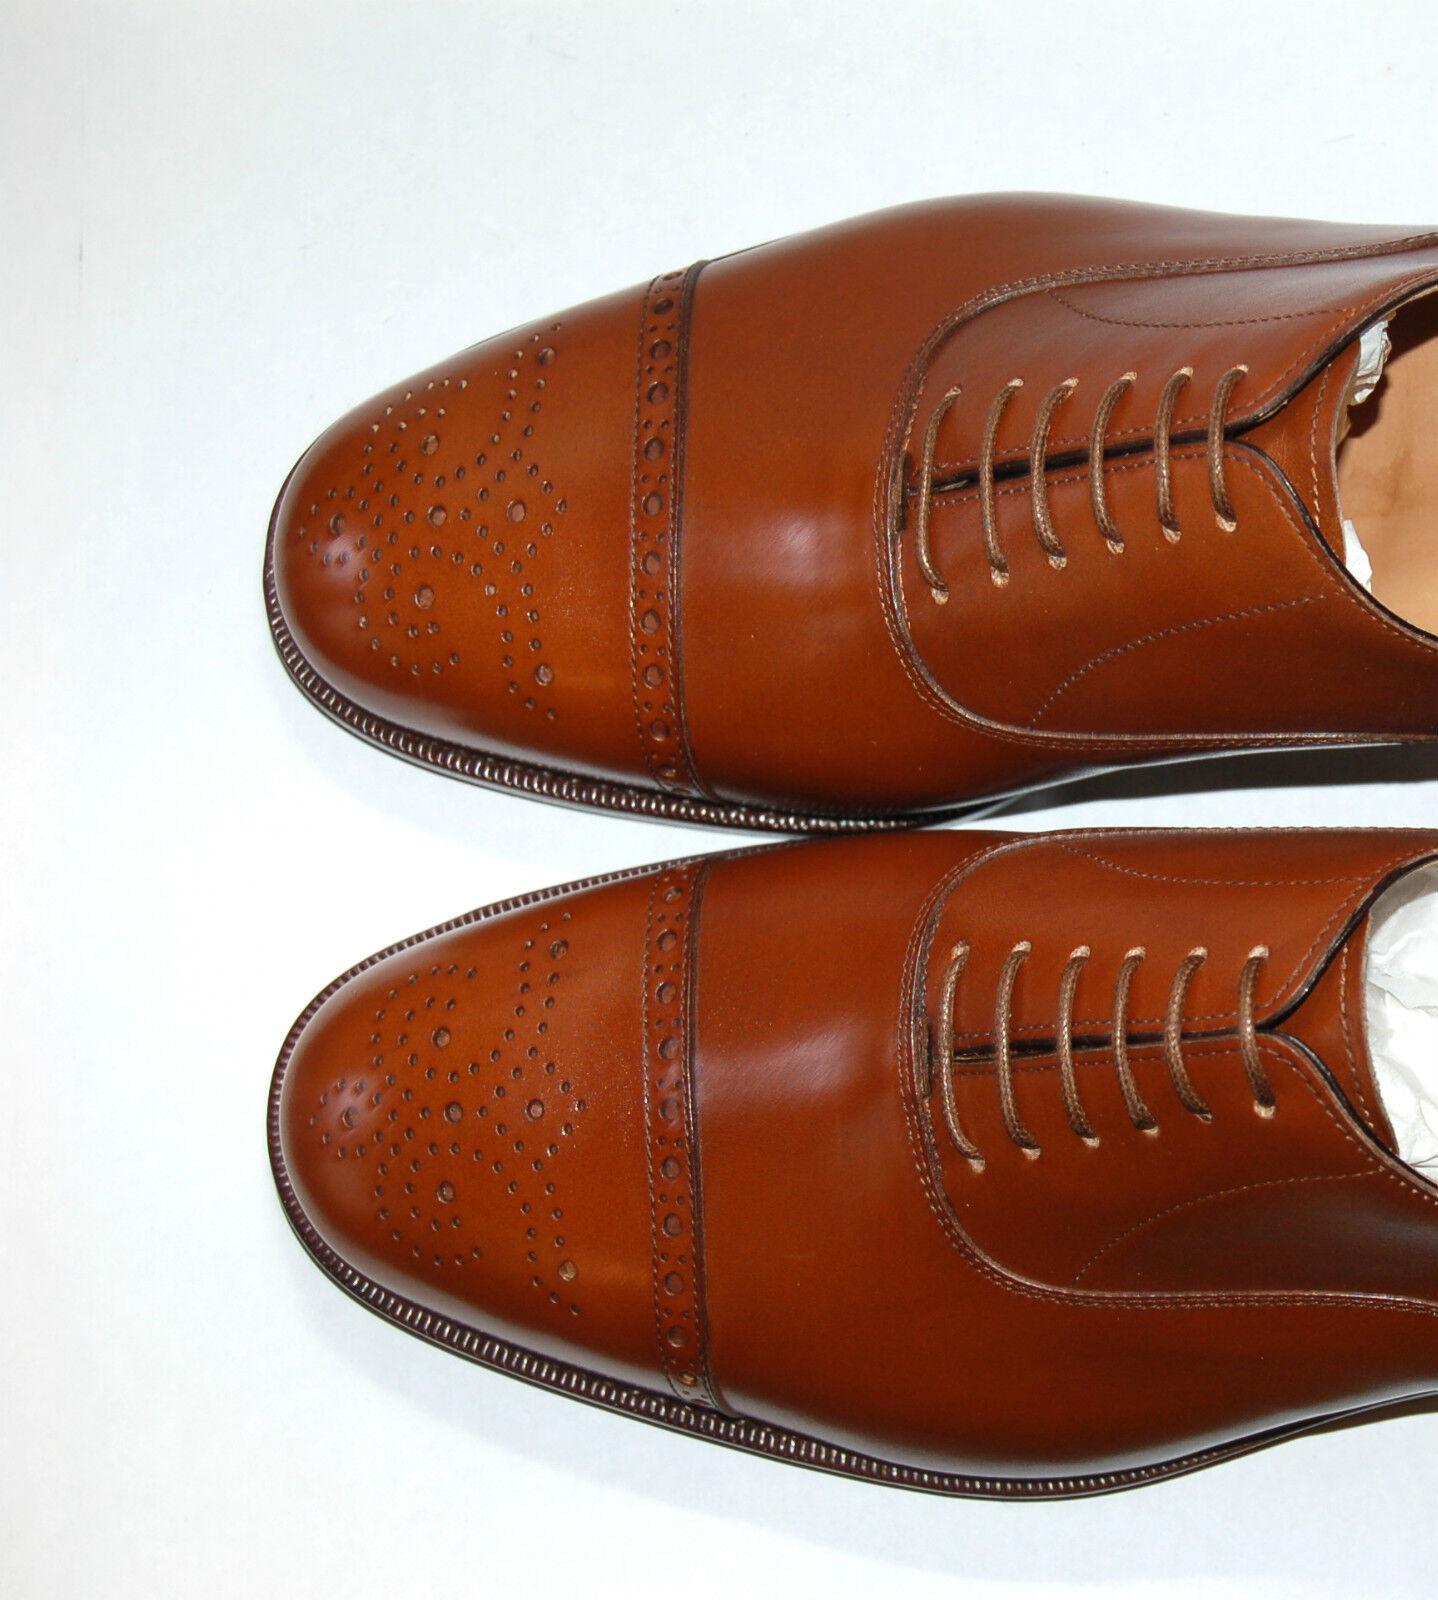 MAN - 5 eu - OXFORD CAPTOE - TAN FRENCH FRENCH FRENCH CALF - PERFS&MEDALLION - DOUBLE LTH SOLE 39111d